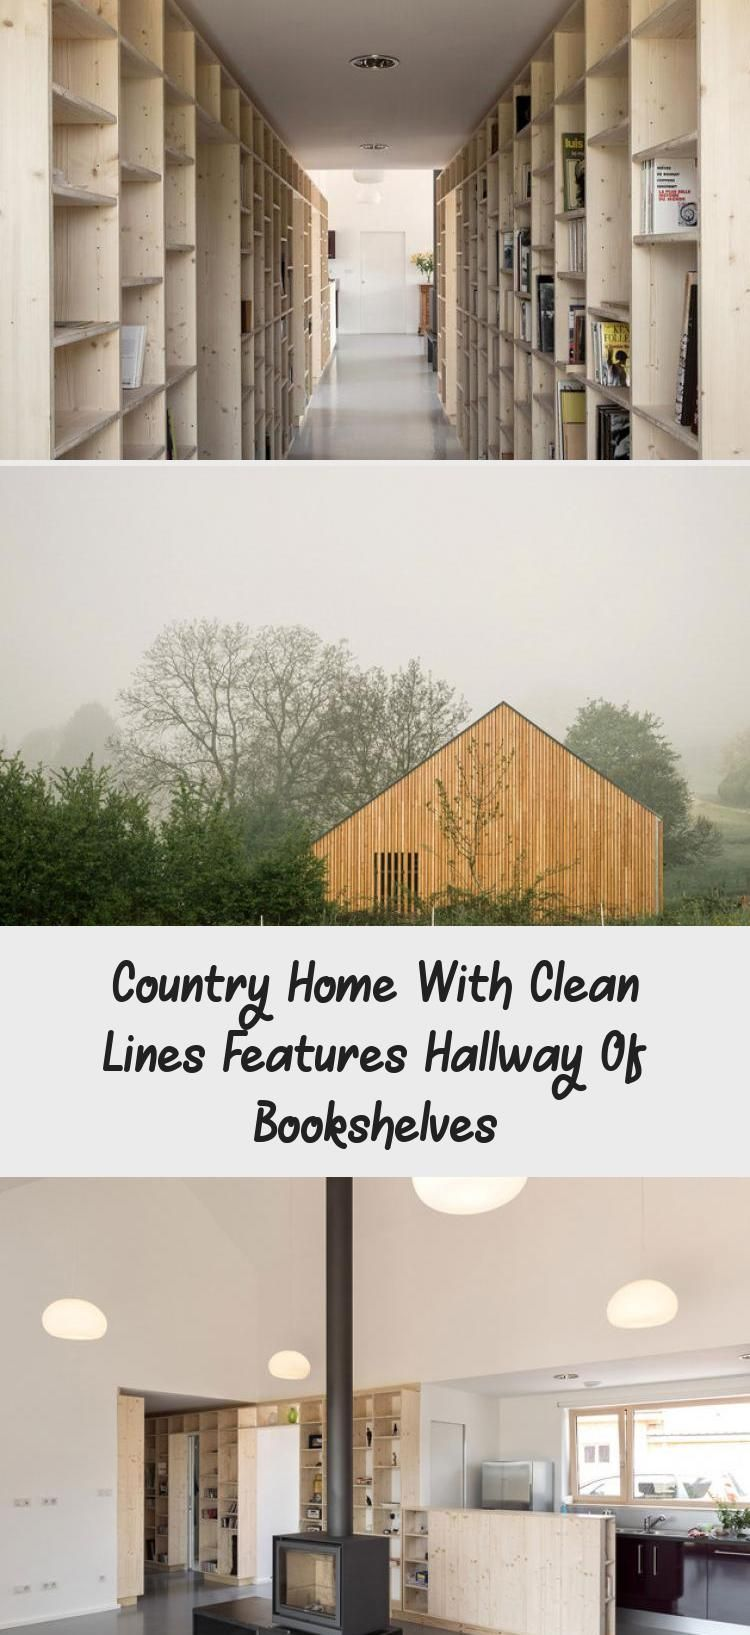 Country Home With Clean Lines Features Hallway Of Bookshelves #hallwaybookshelves